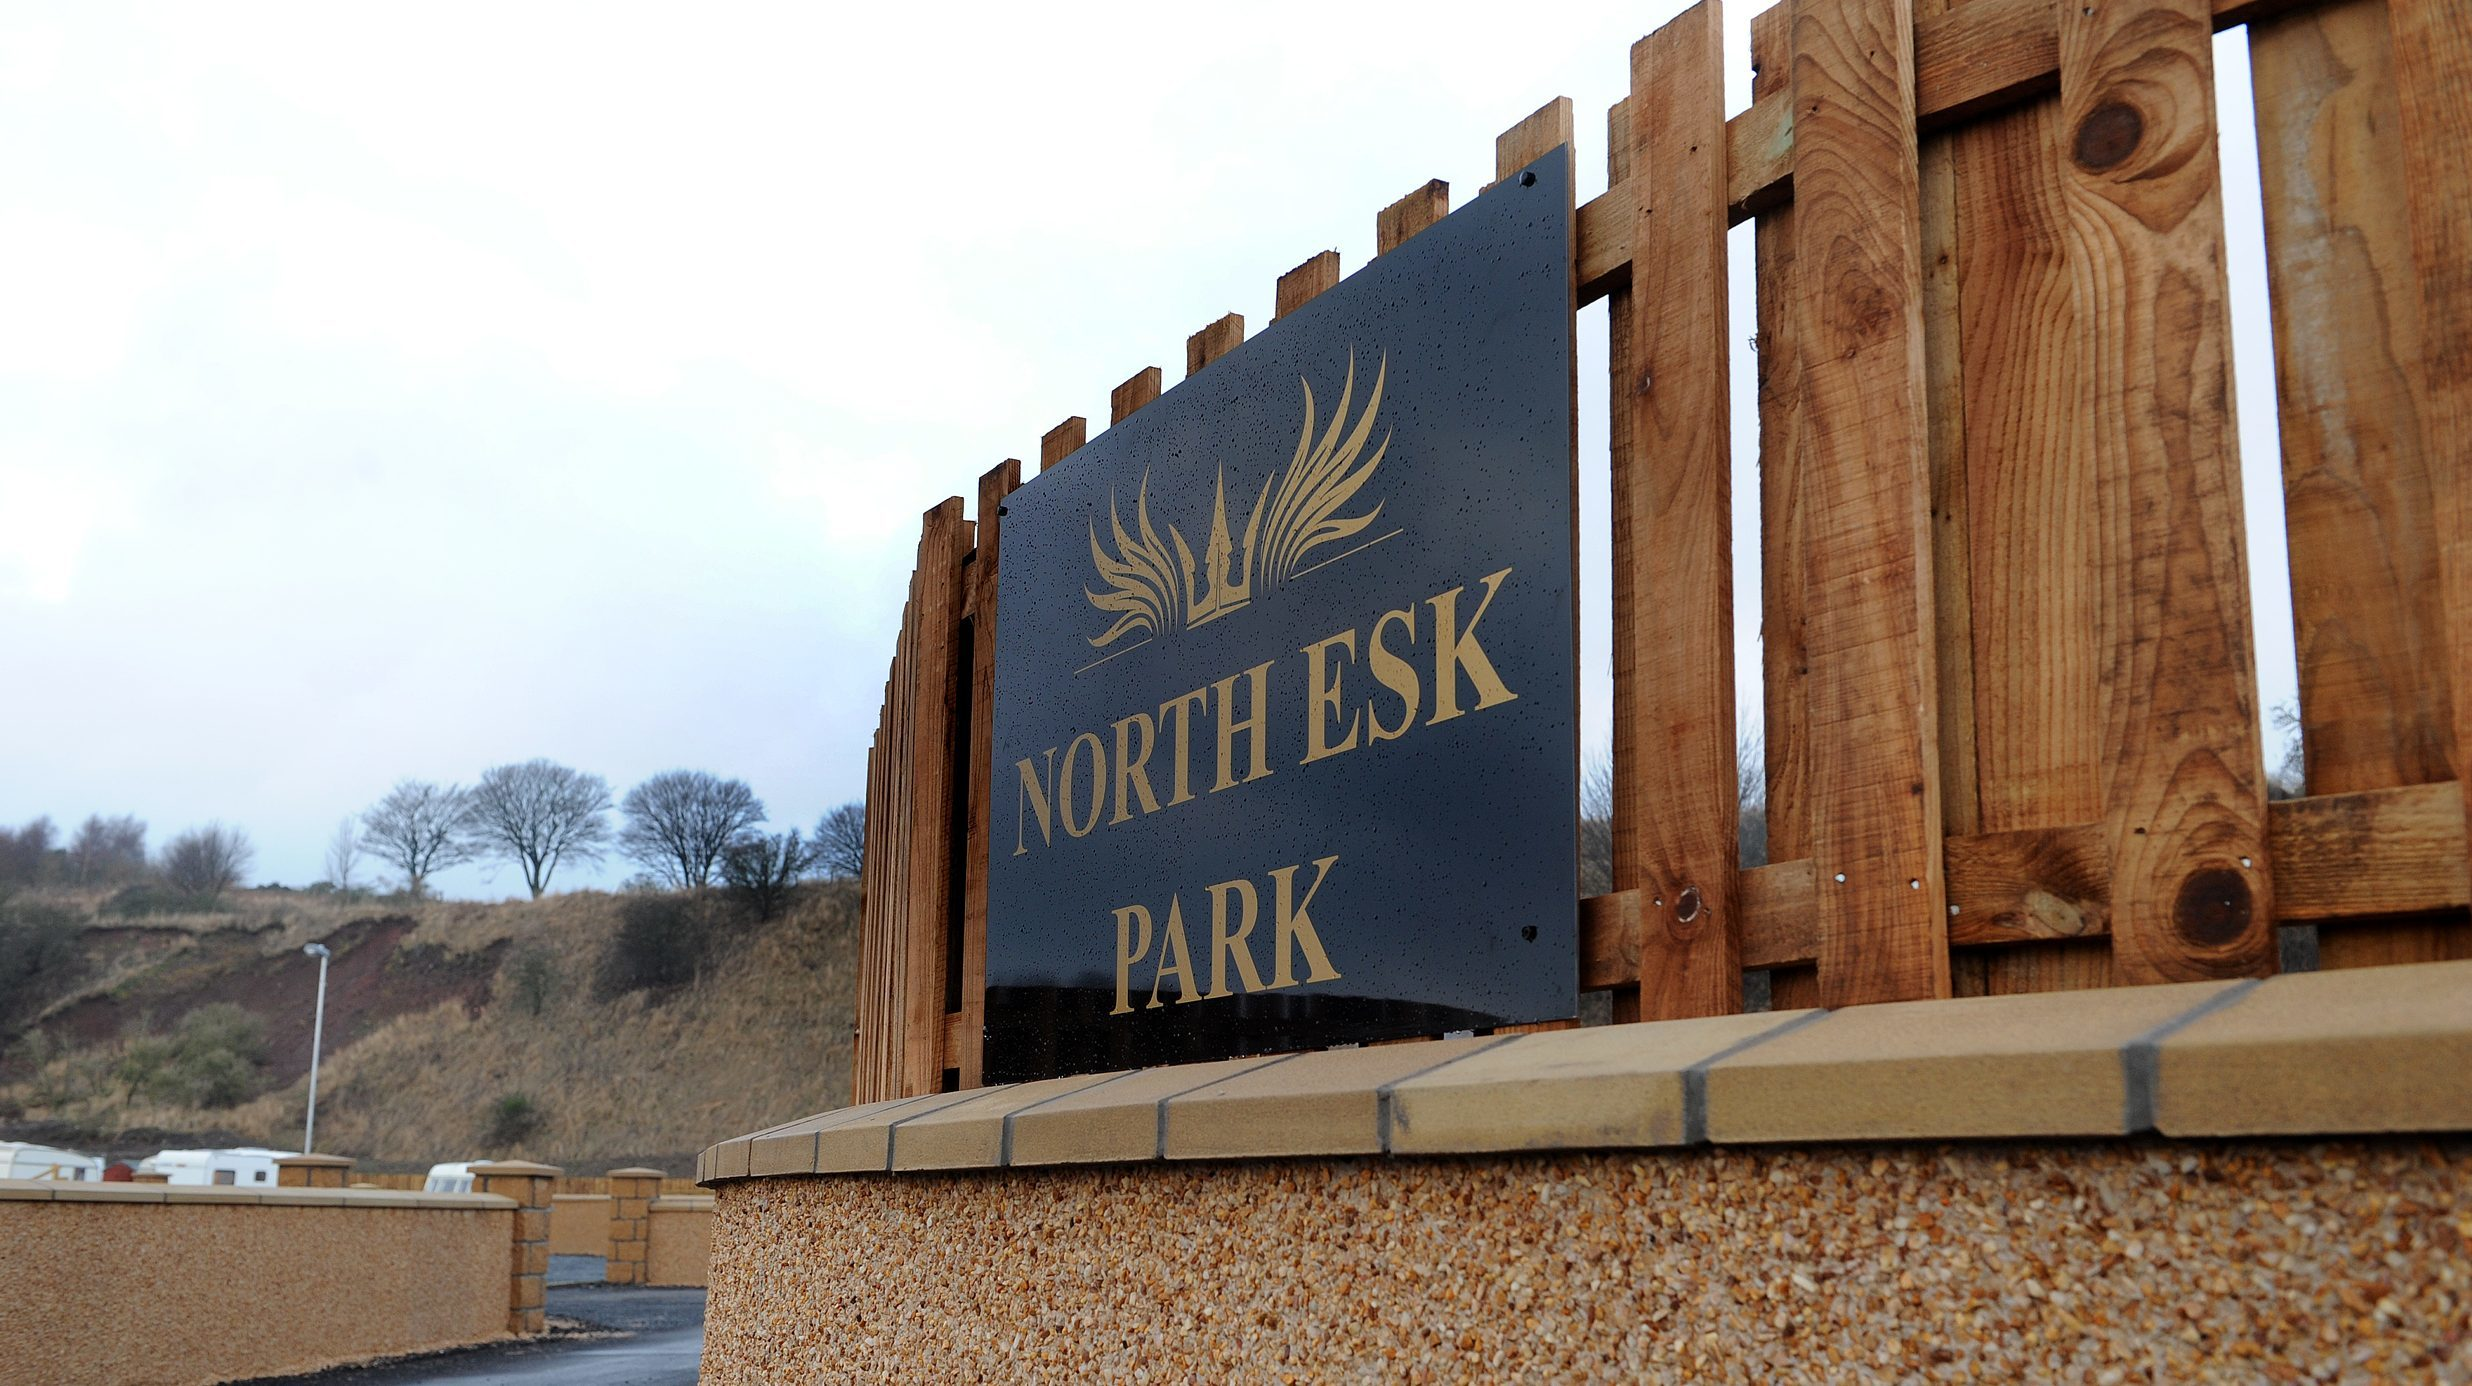 North Esk Park.